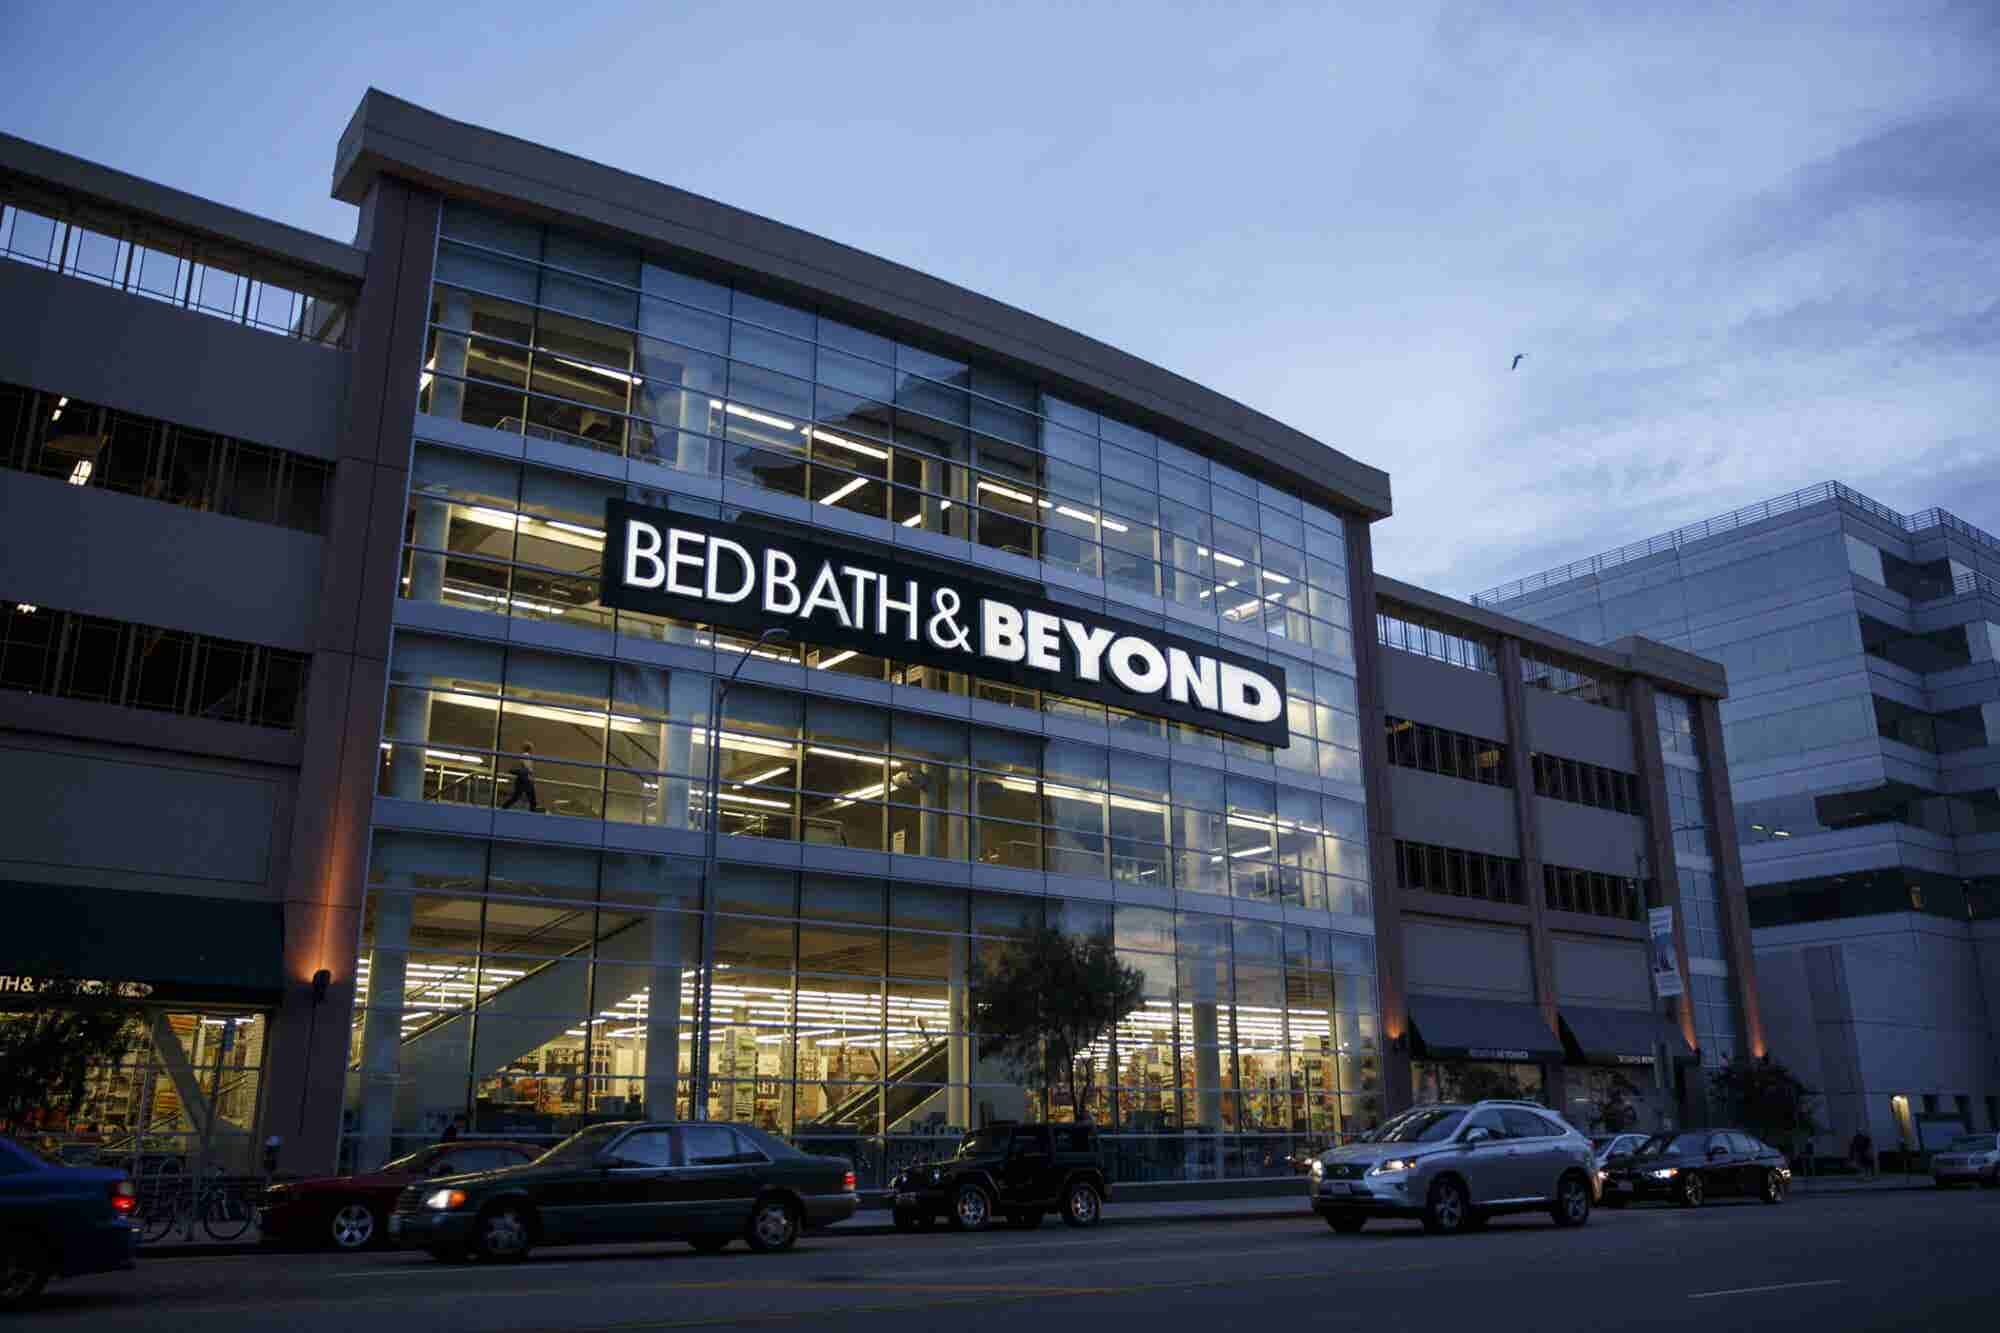 Bed Bath & Beyond (Up 49 Percent This Year) Continues to Rise, but the Market Falls Flat